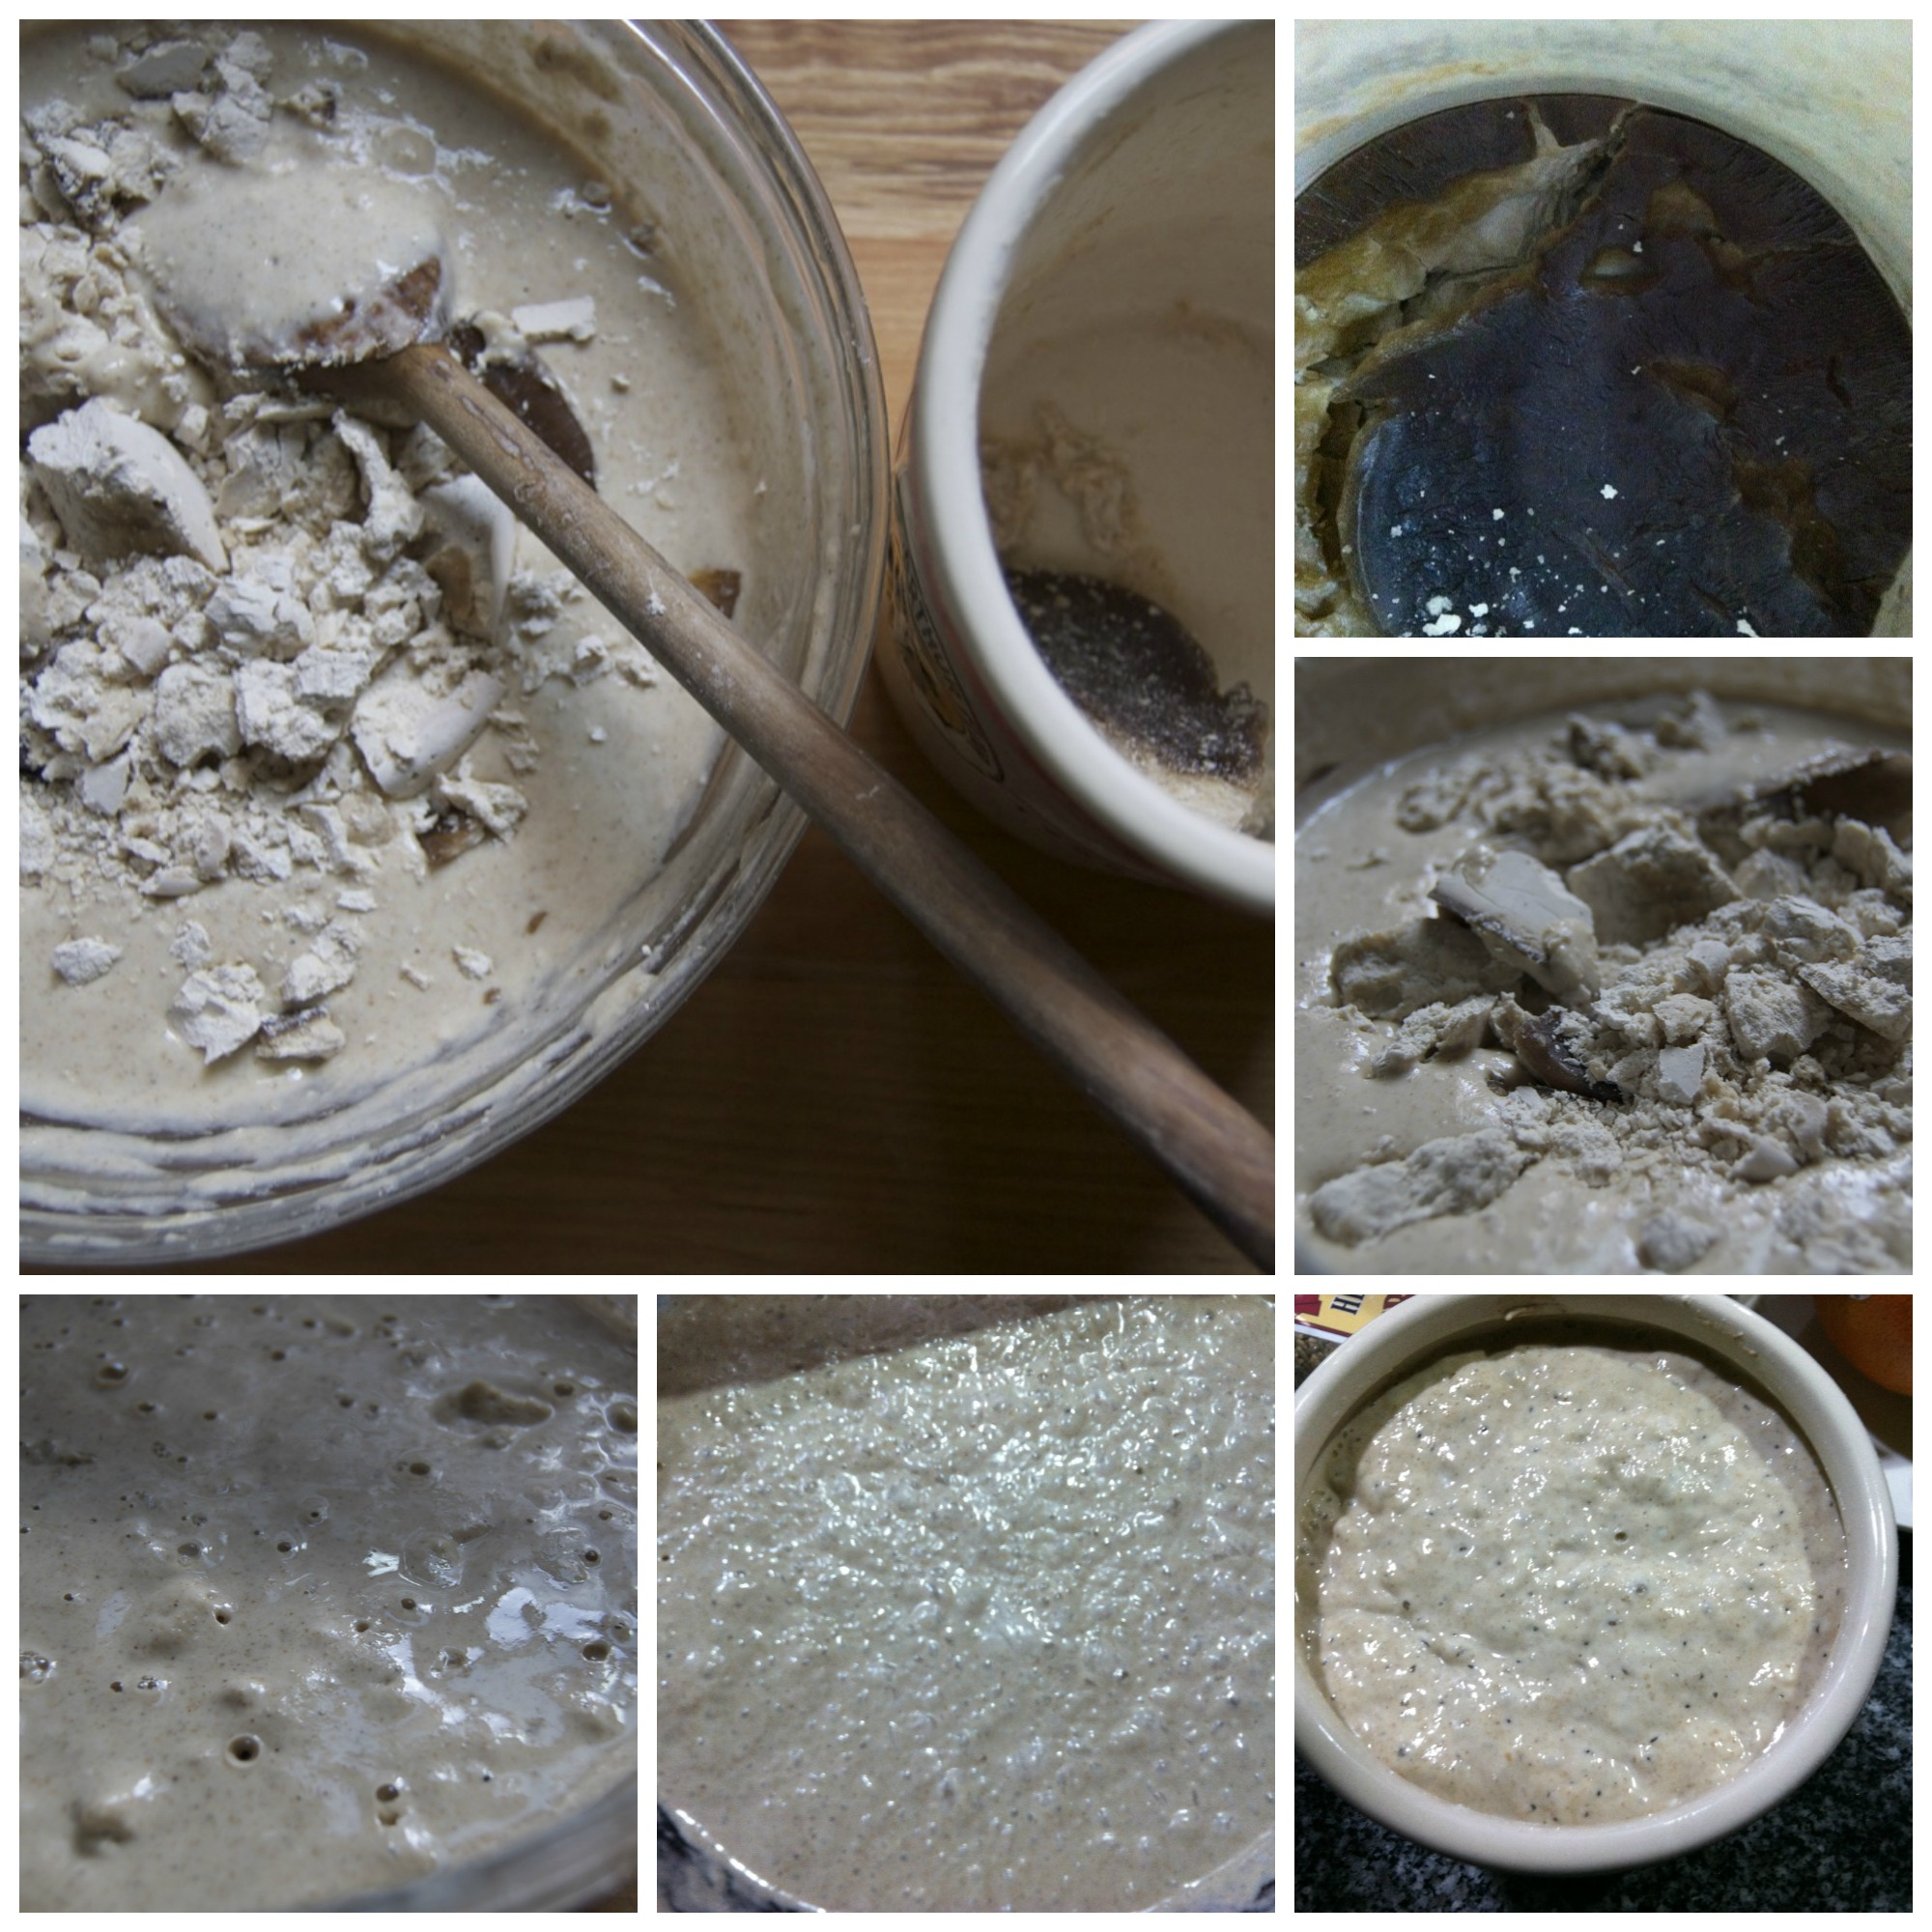 Sourdough starter recovery